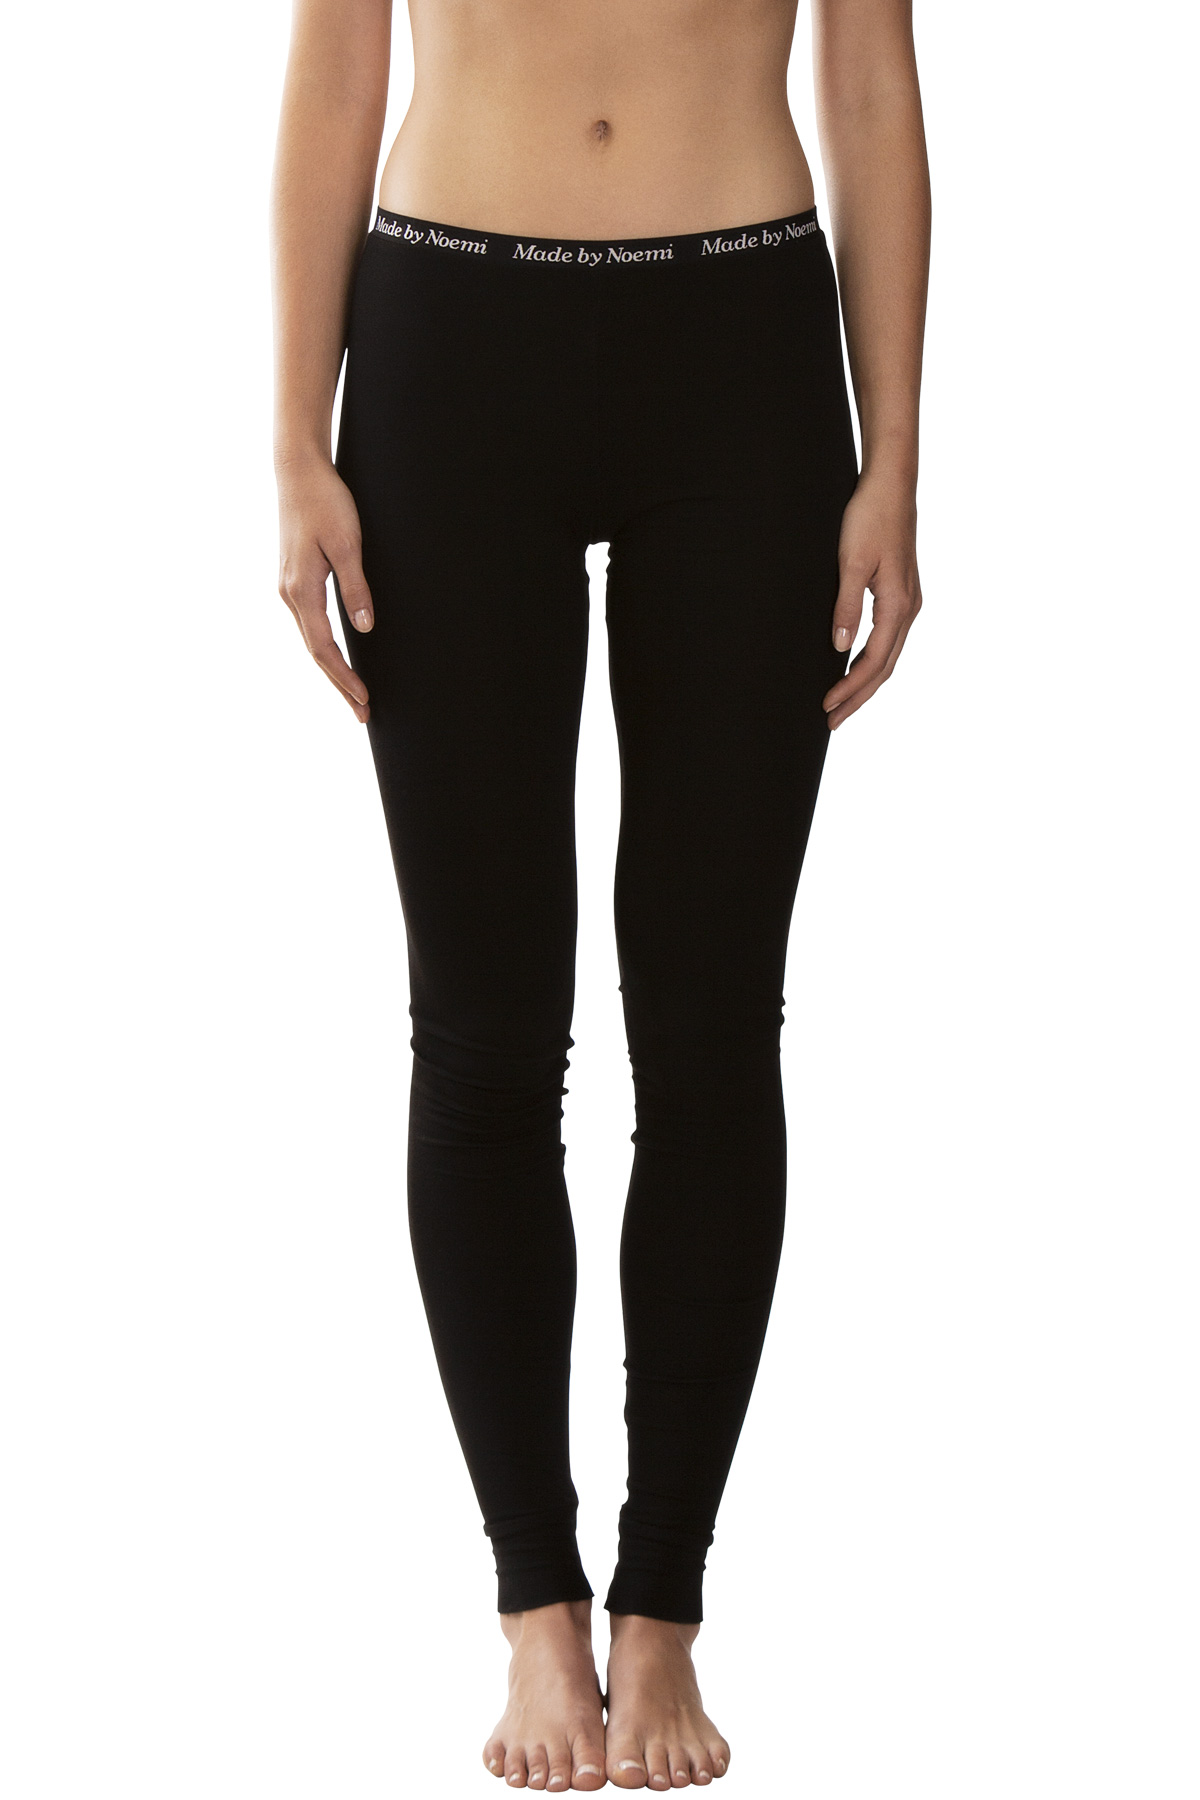 Overstock uses cookies to ensure you get the best experience on our site. Simply Ravishing Yoga Pants Cotton Fold Over Waist Boot Cut (Size: S-3X) 27 Reviews. Quick View Women's Solid Black Cotton Legging. Reviews. Buyer's Pick. More Options. Quick View $ 39 - $